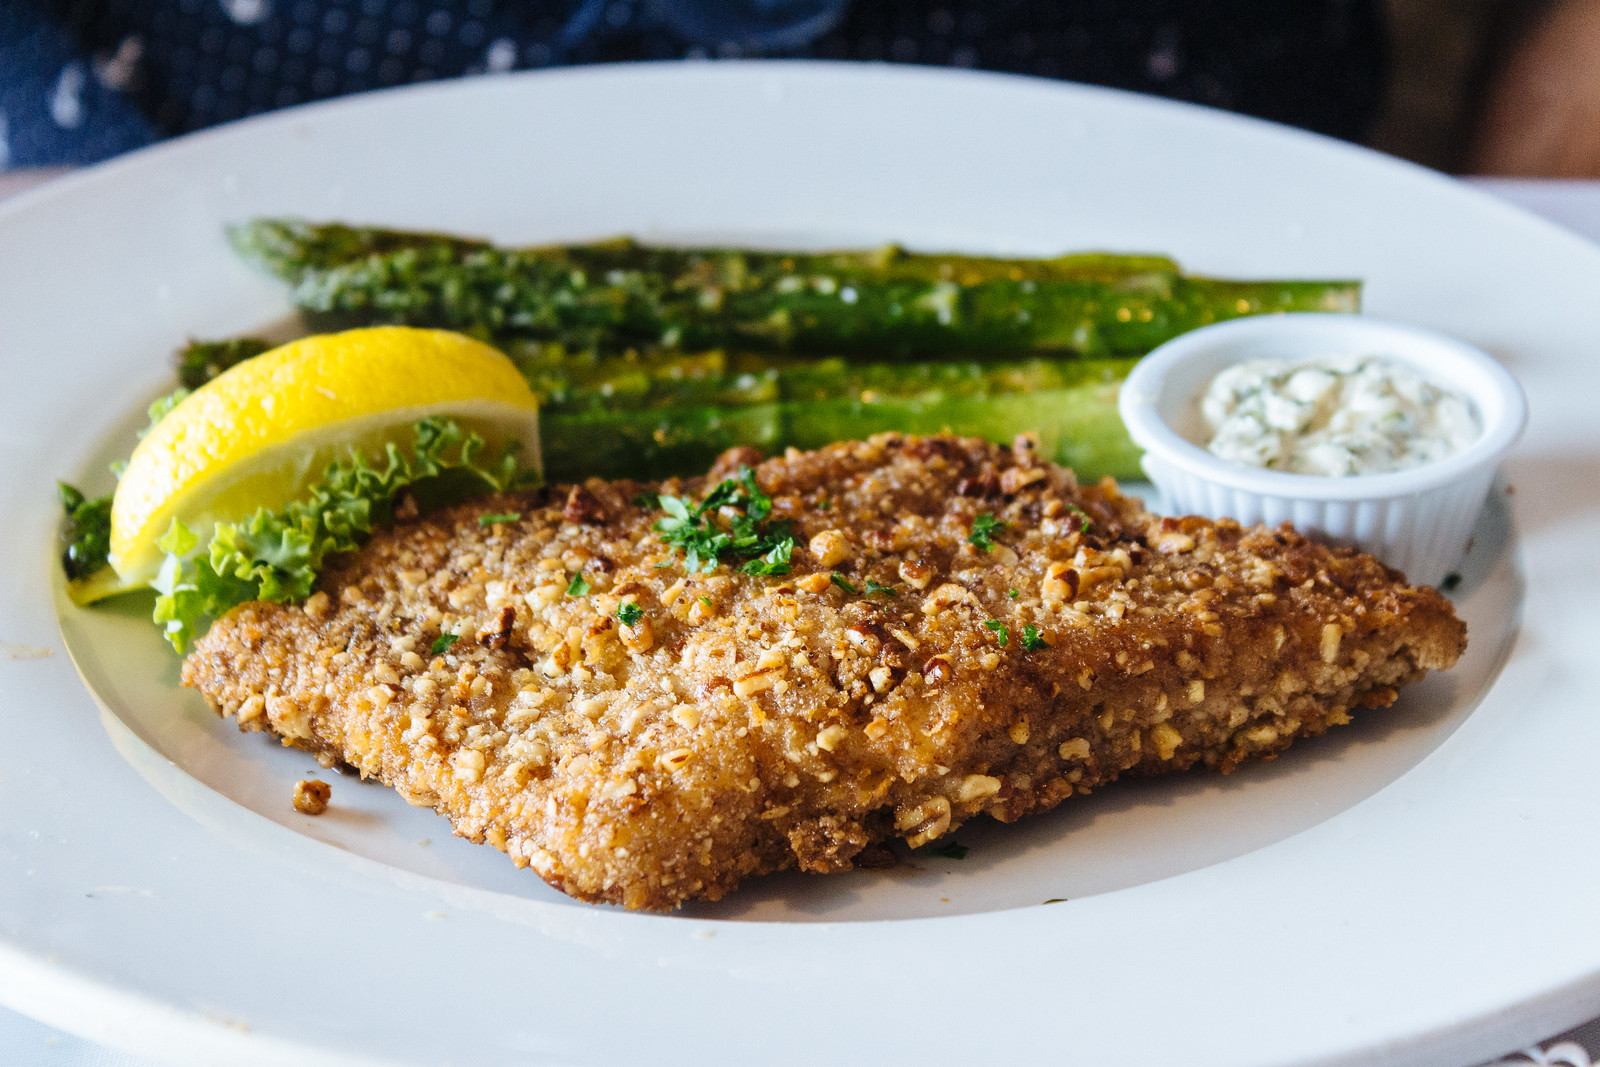 Plate of pecan-crusted fish with asparagus